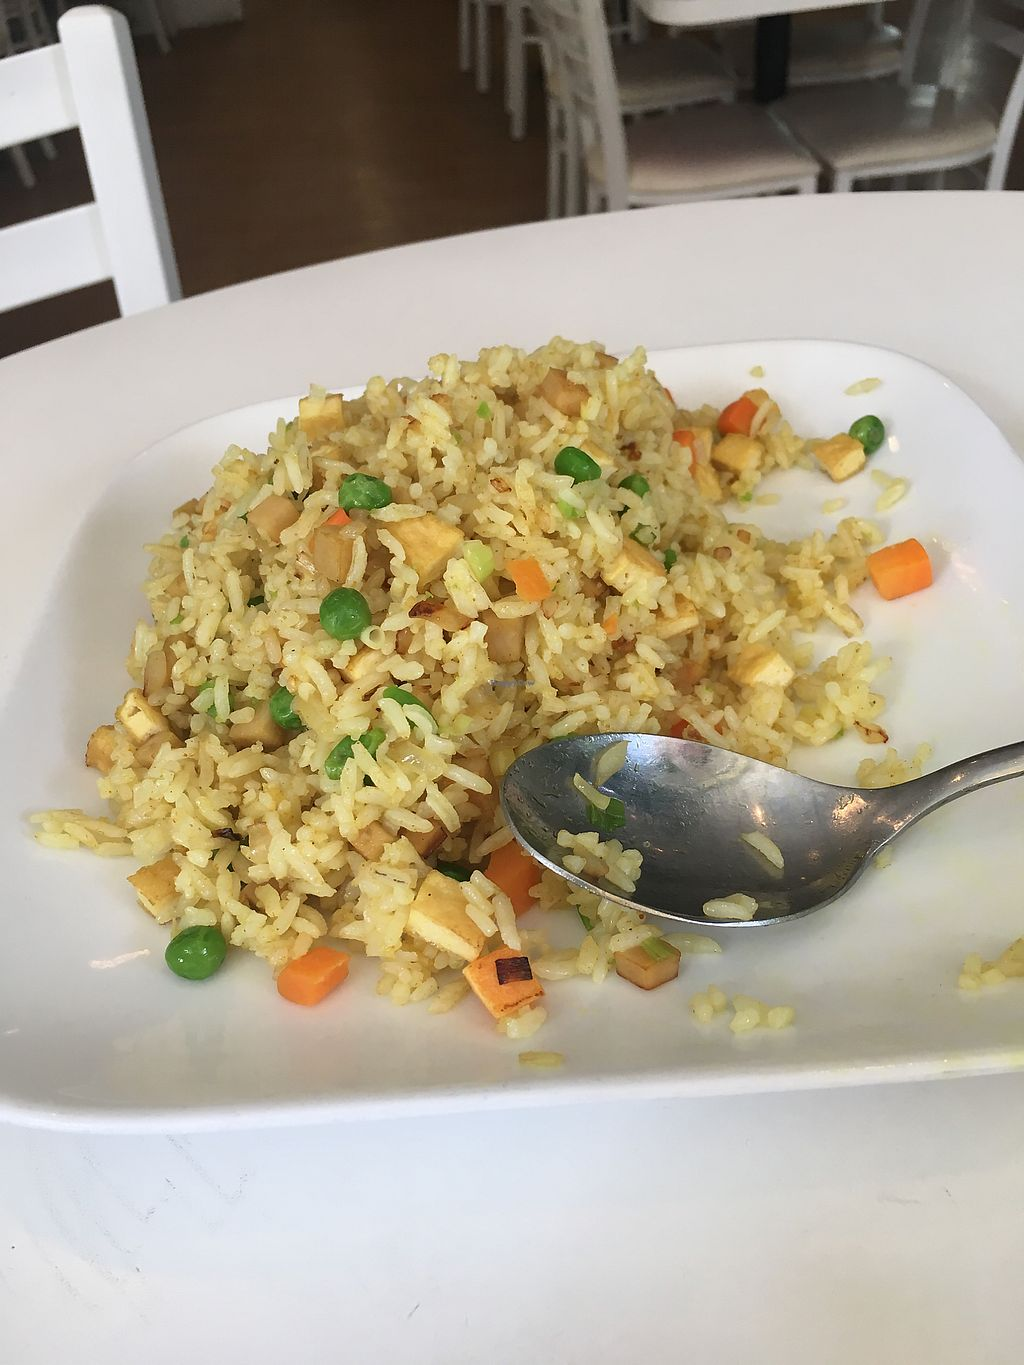 """Photo of Loving Hut  by <a href=""""/members/profile/haawlee"""">haawlee</a> <br/>Guru Fried Rice <br/> July 8, 2017  - <a href='/contact/abuse/image/27169/277714'>Report</a>"""